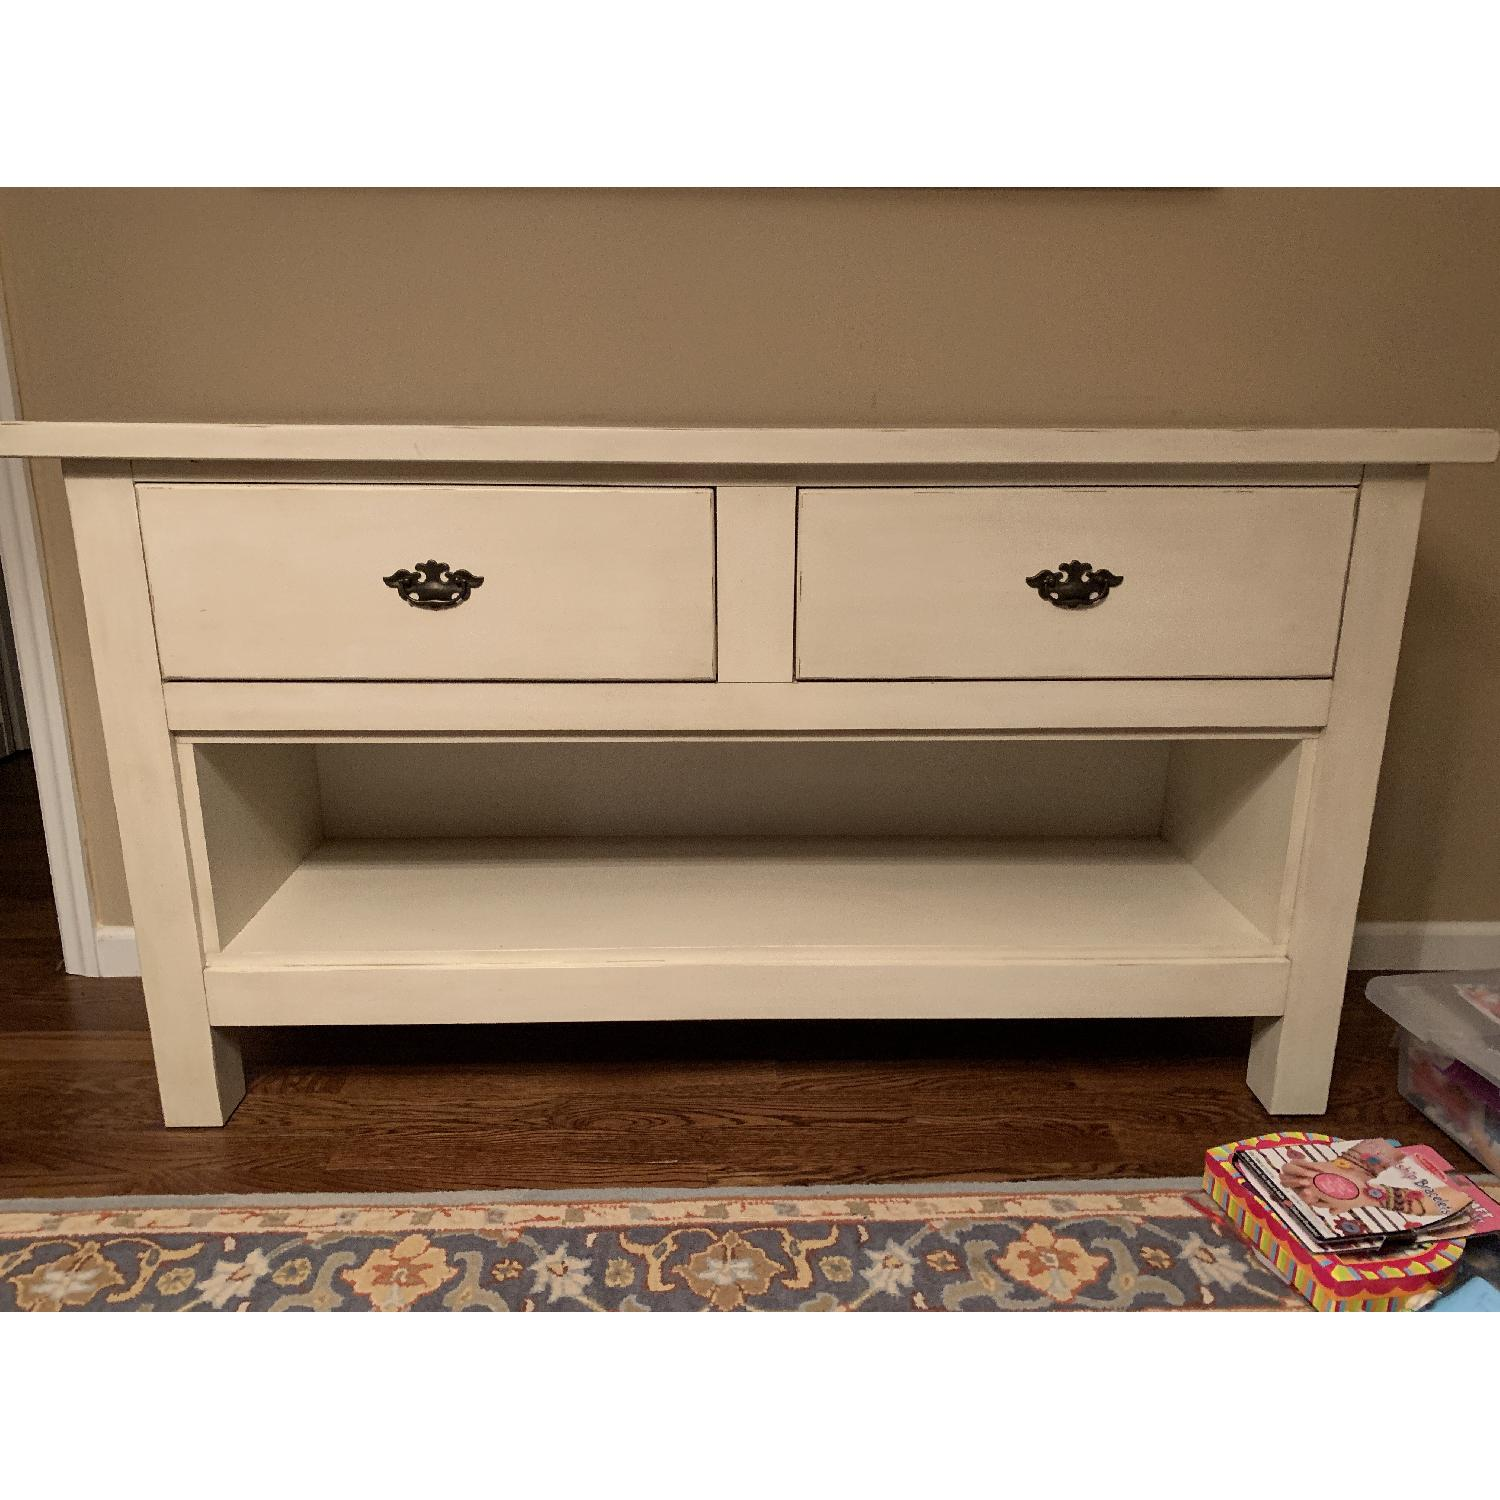 Pottery Barn 2 Drawer Credenza/Wine Rack